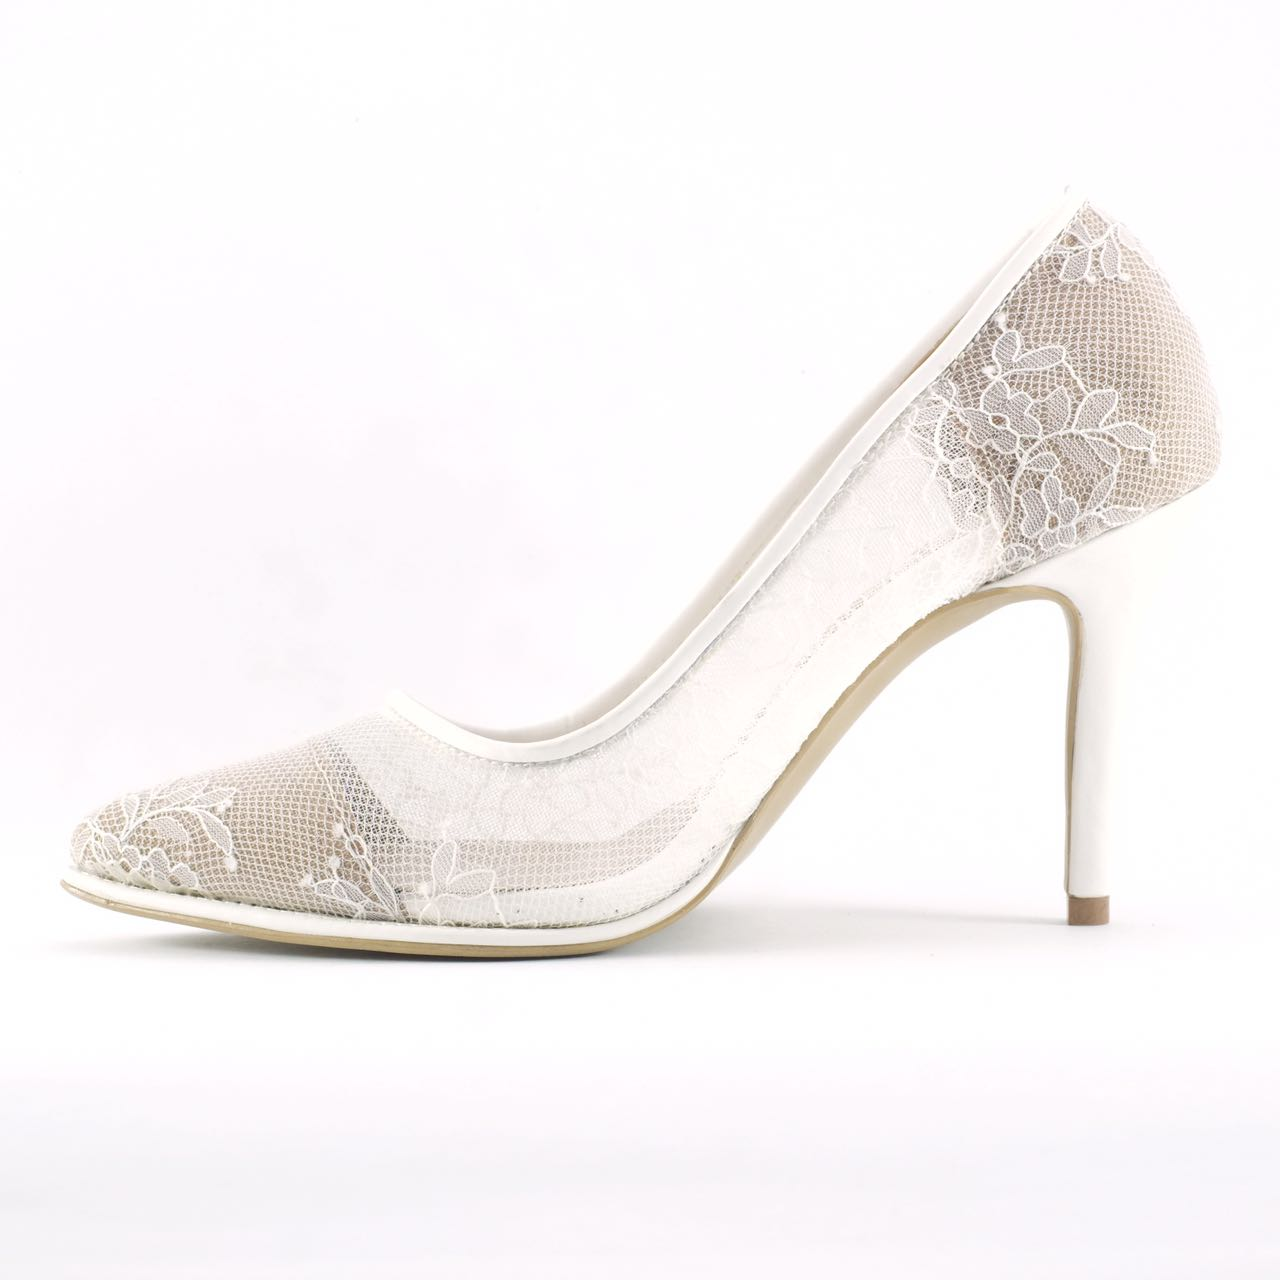 Directory of Wedding Shoes Vendors in Jakarta  6463d1e492